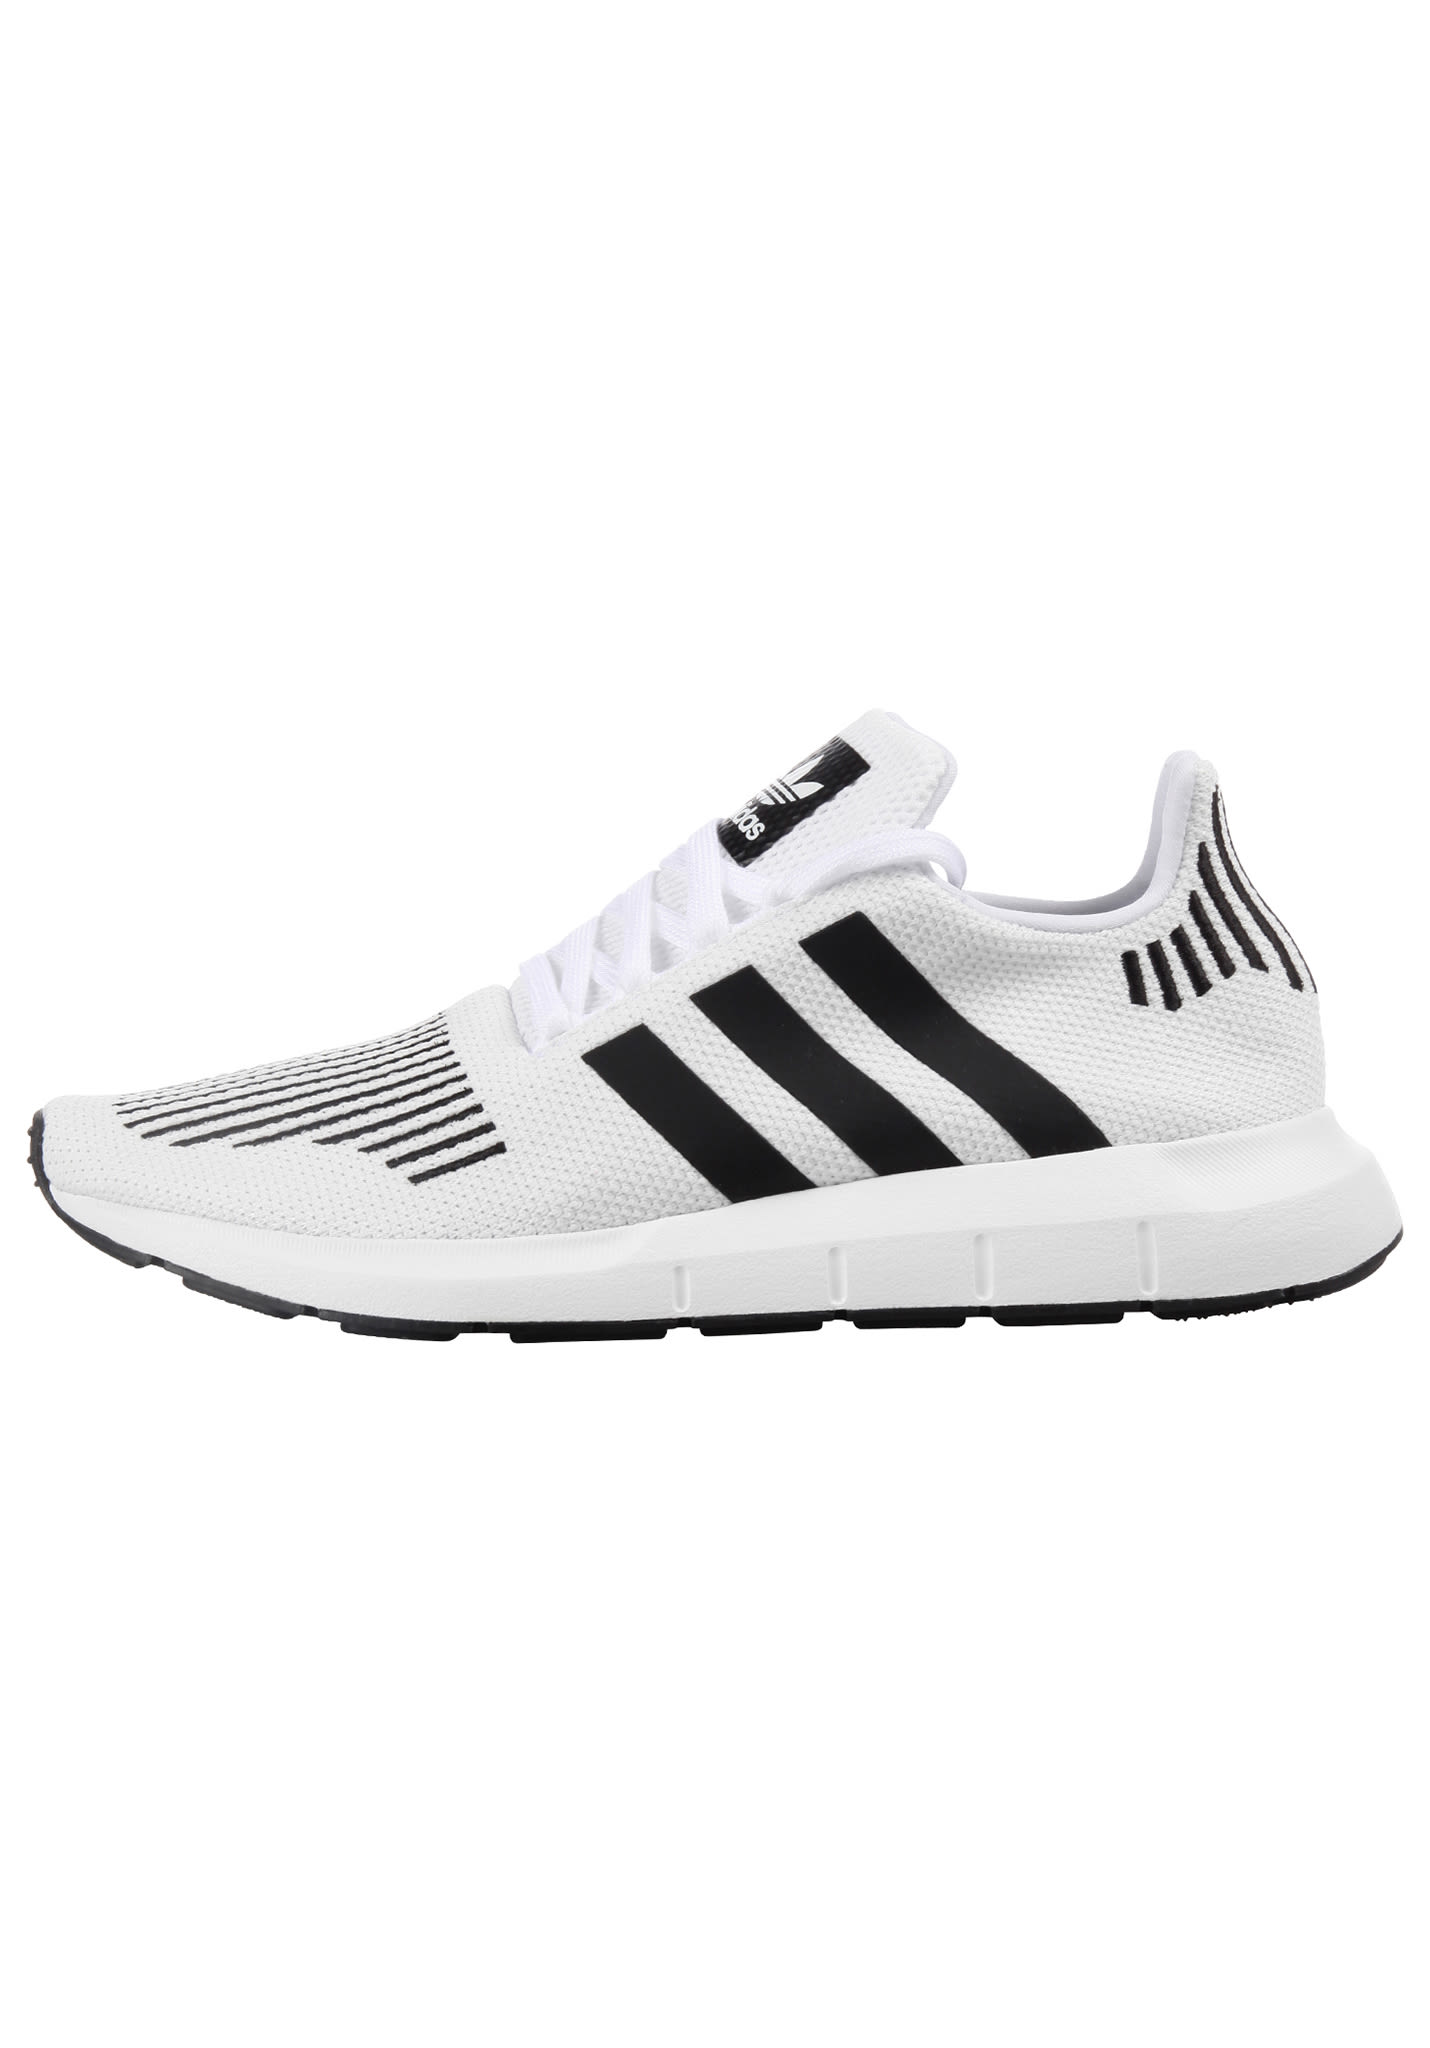 ADIDAS Swift Run - Sneakers for Men - White - Planet Sports